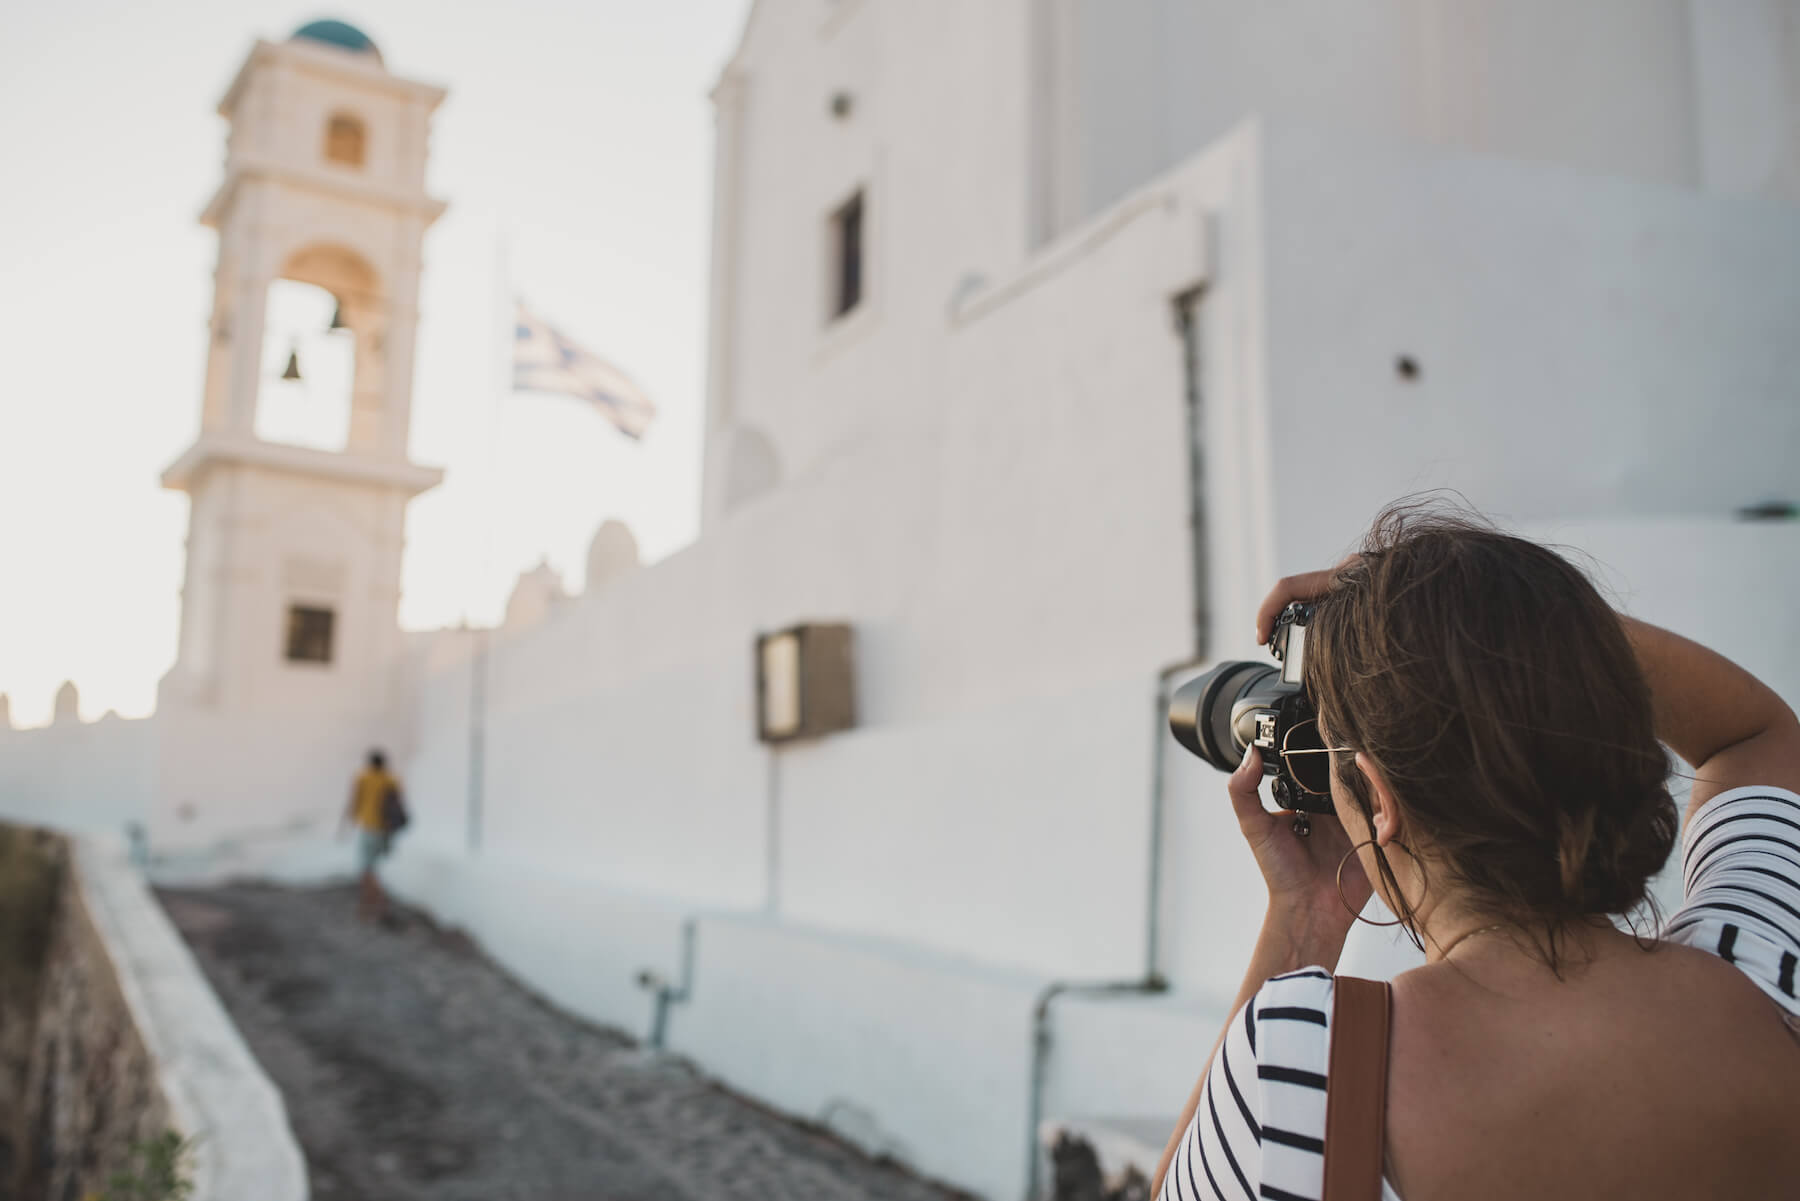 Photographer shooting a scene in Santorini, Greece